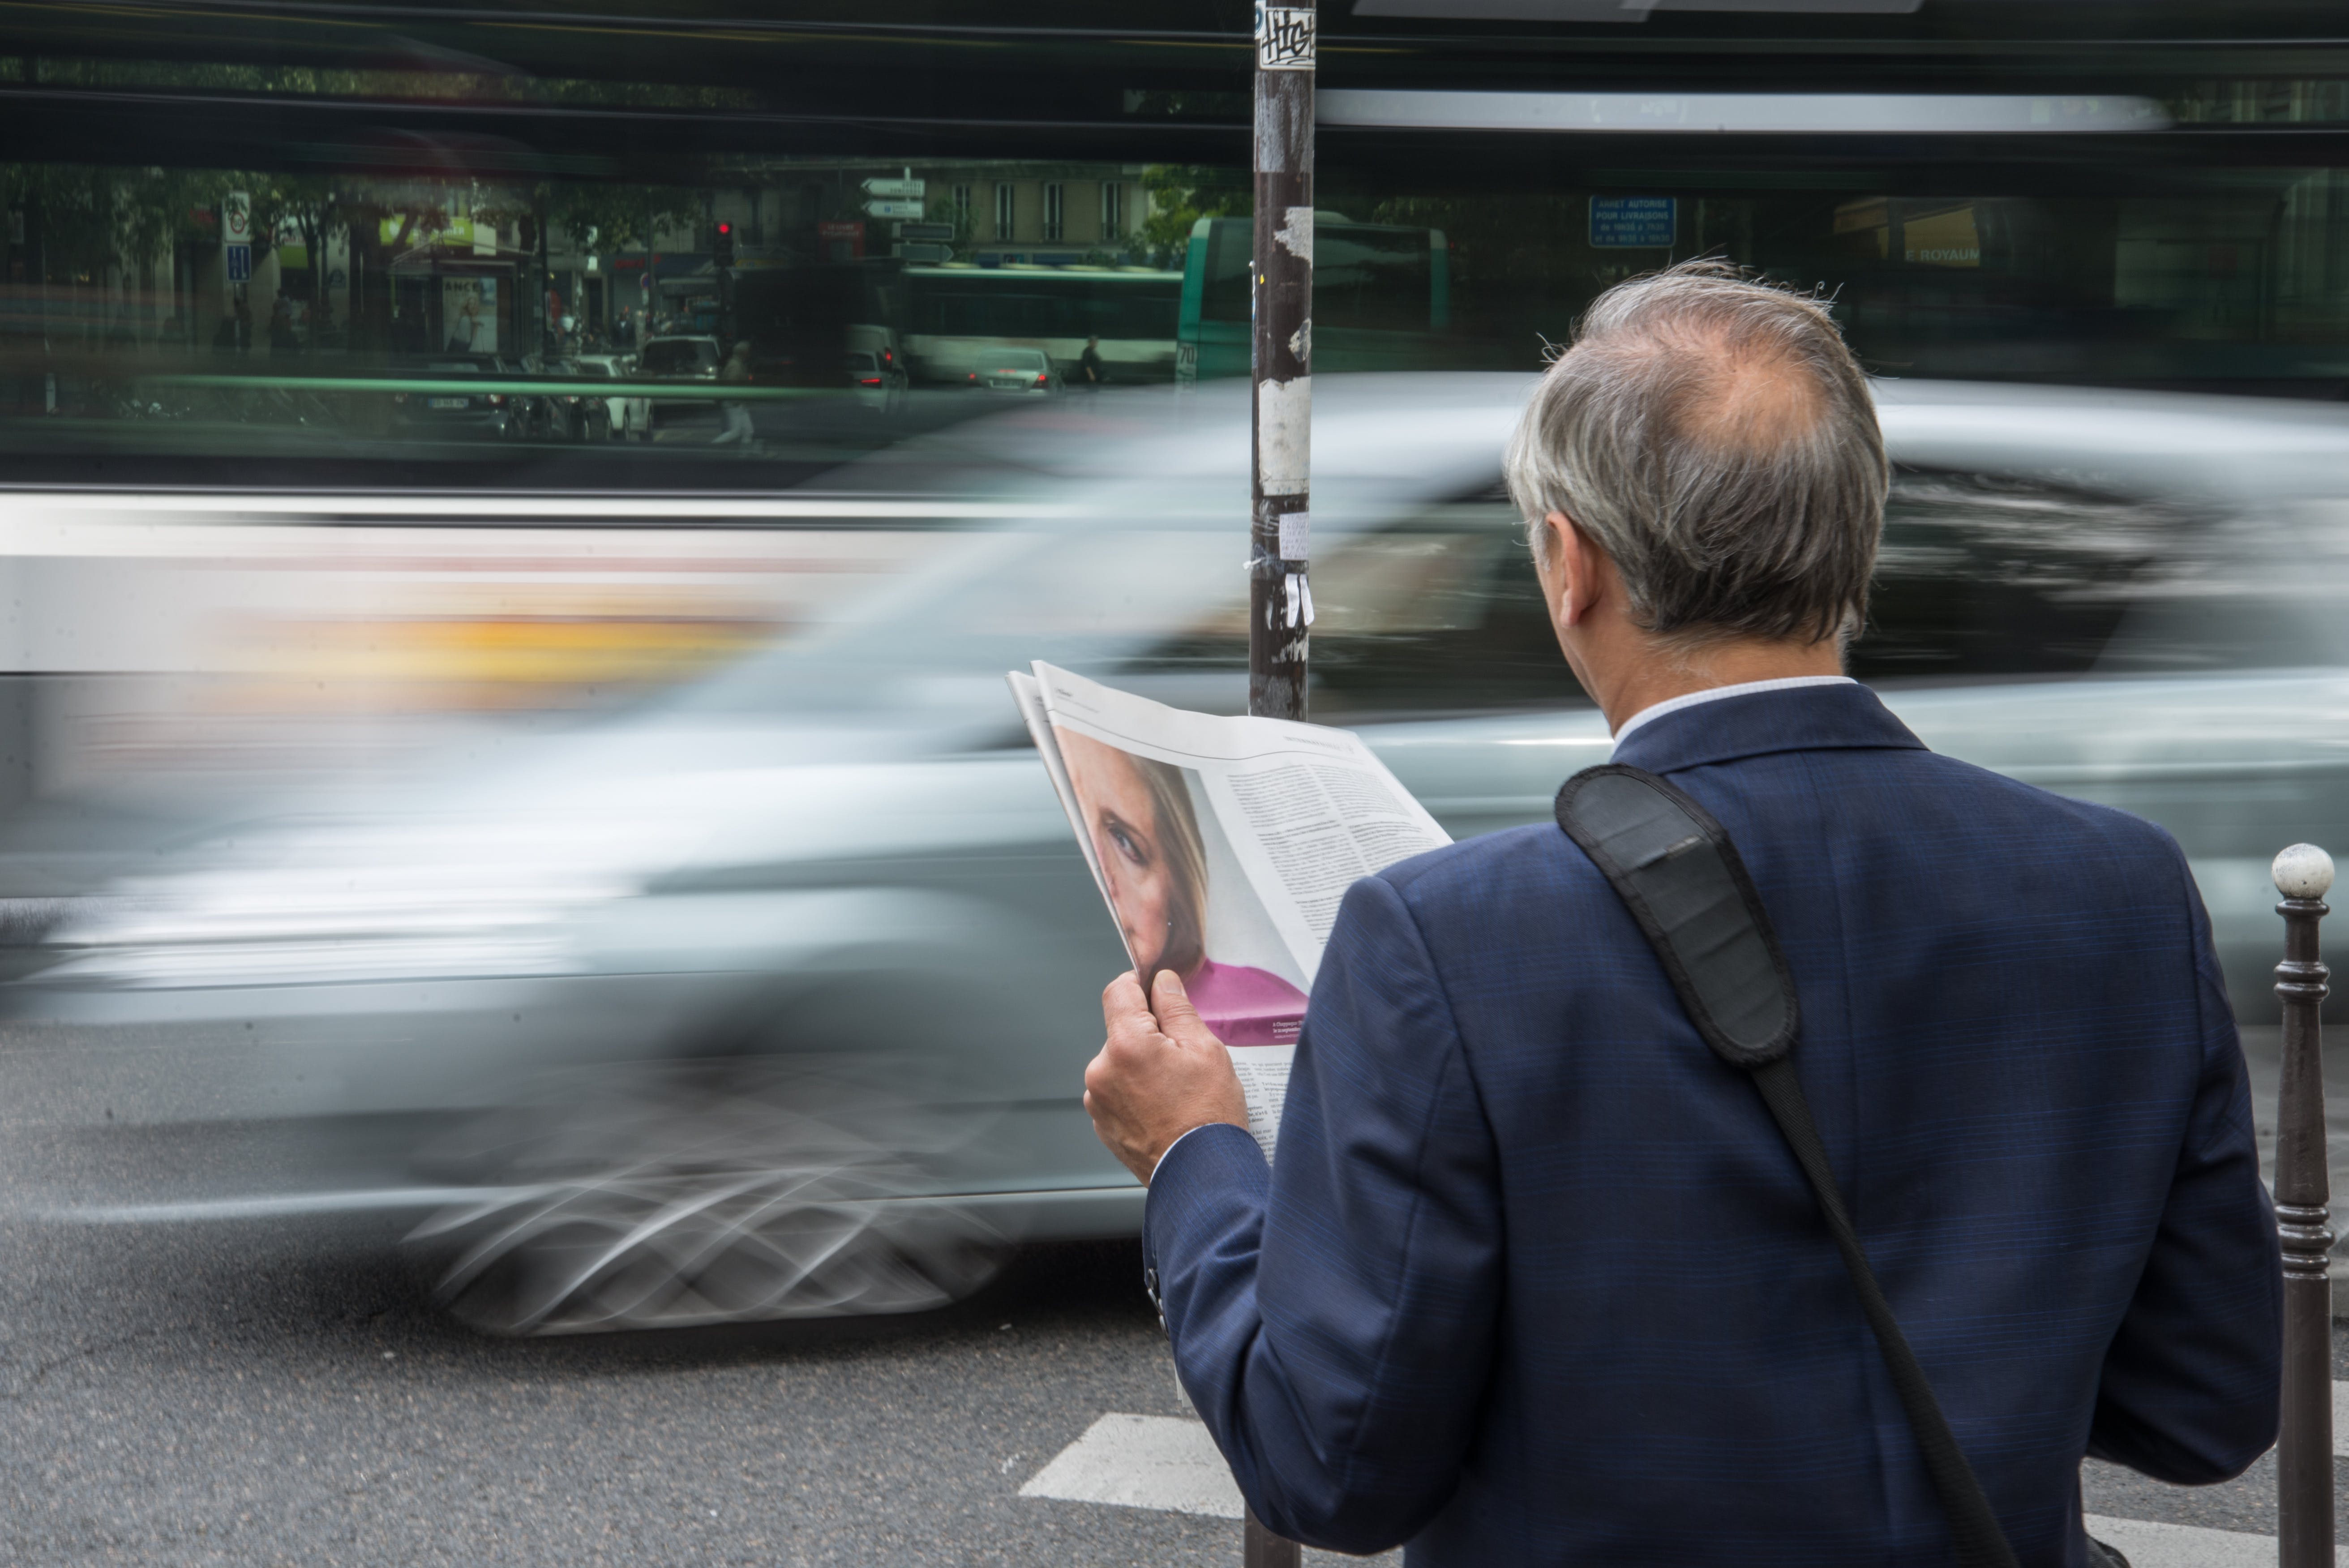 Man Wearing Blue Suit Jacket Holding Newspaper in Front Vehicle on Concrete Road